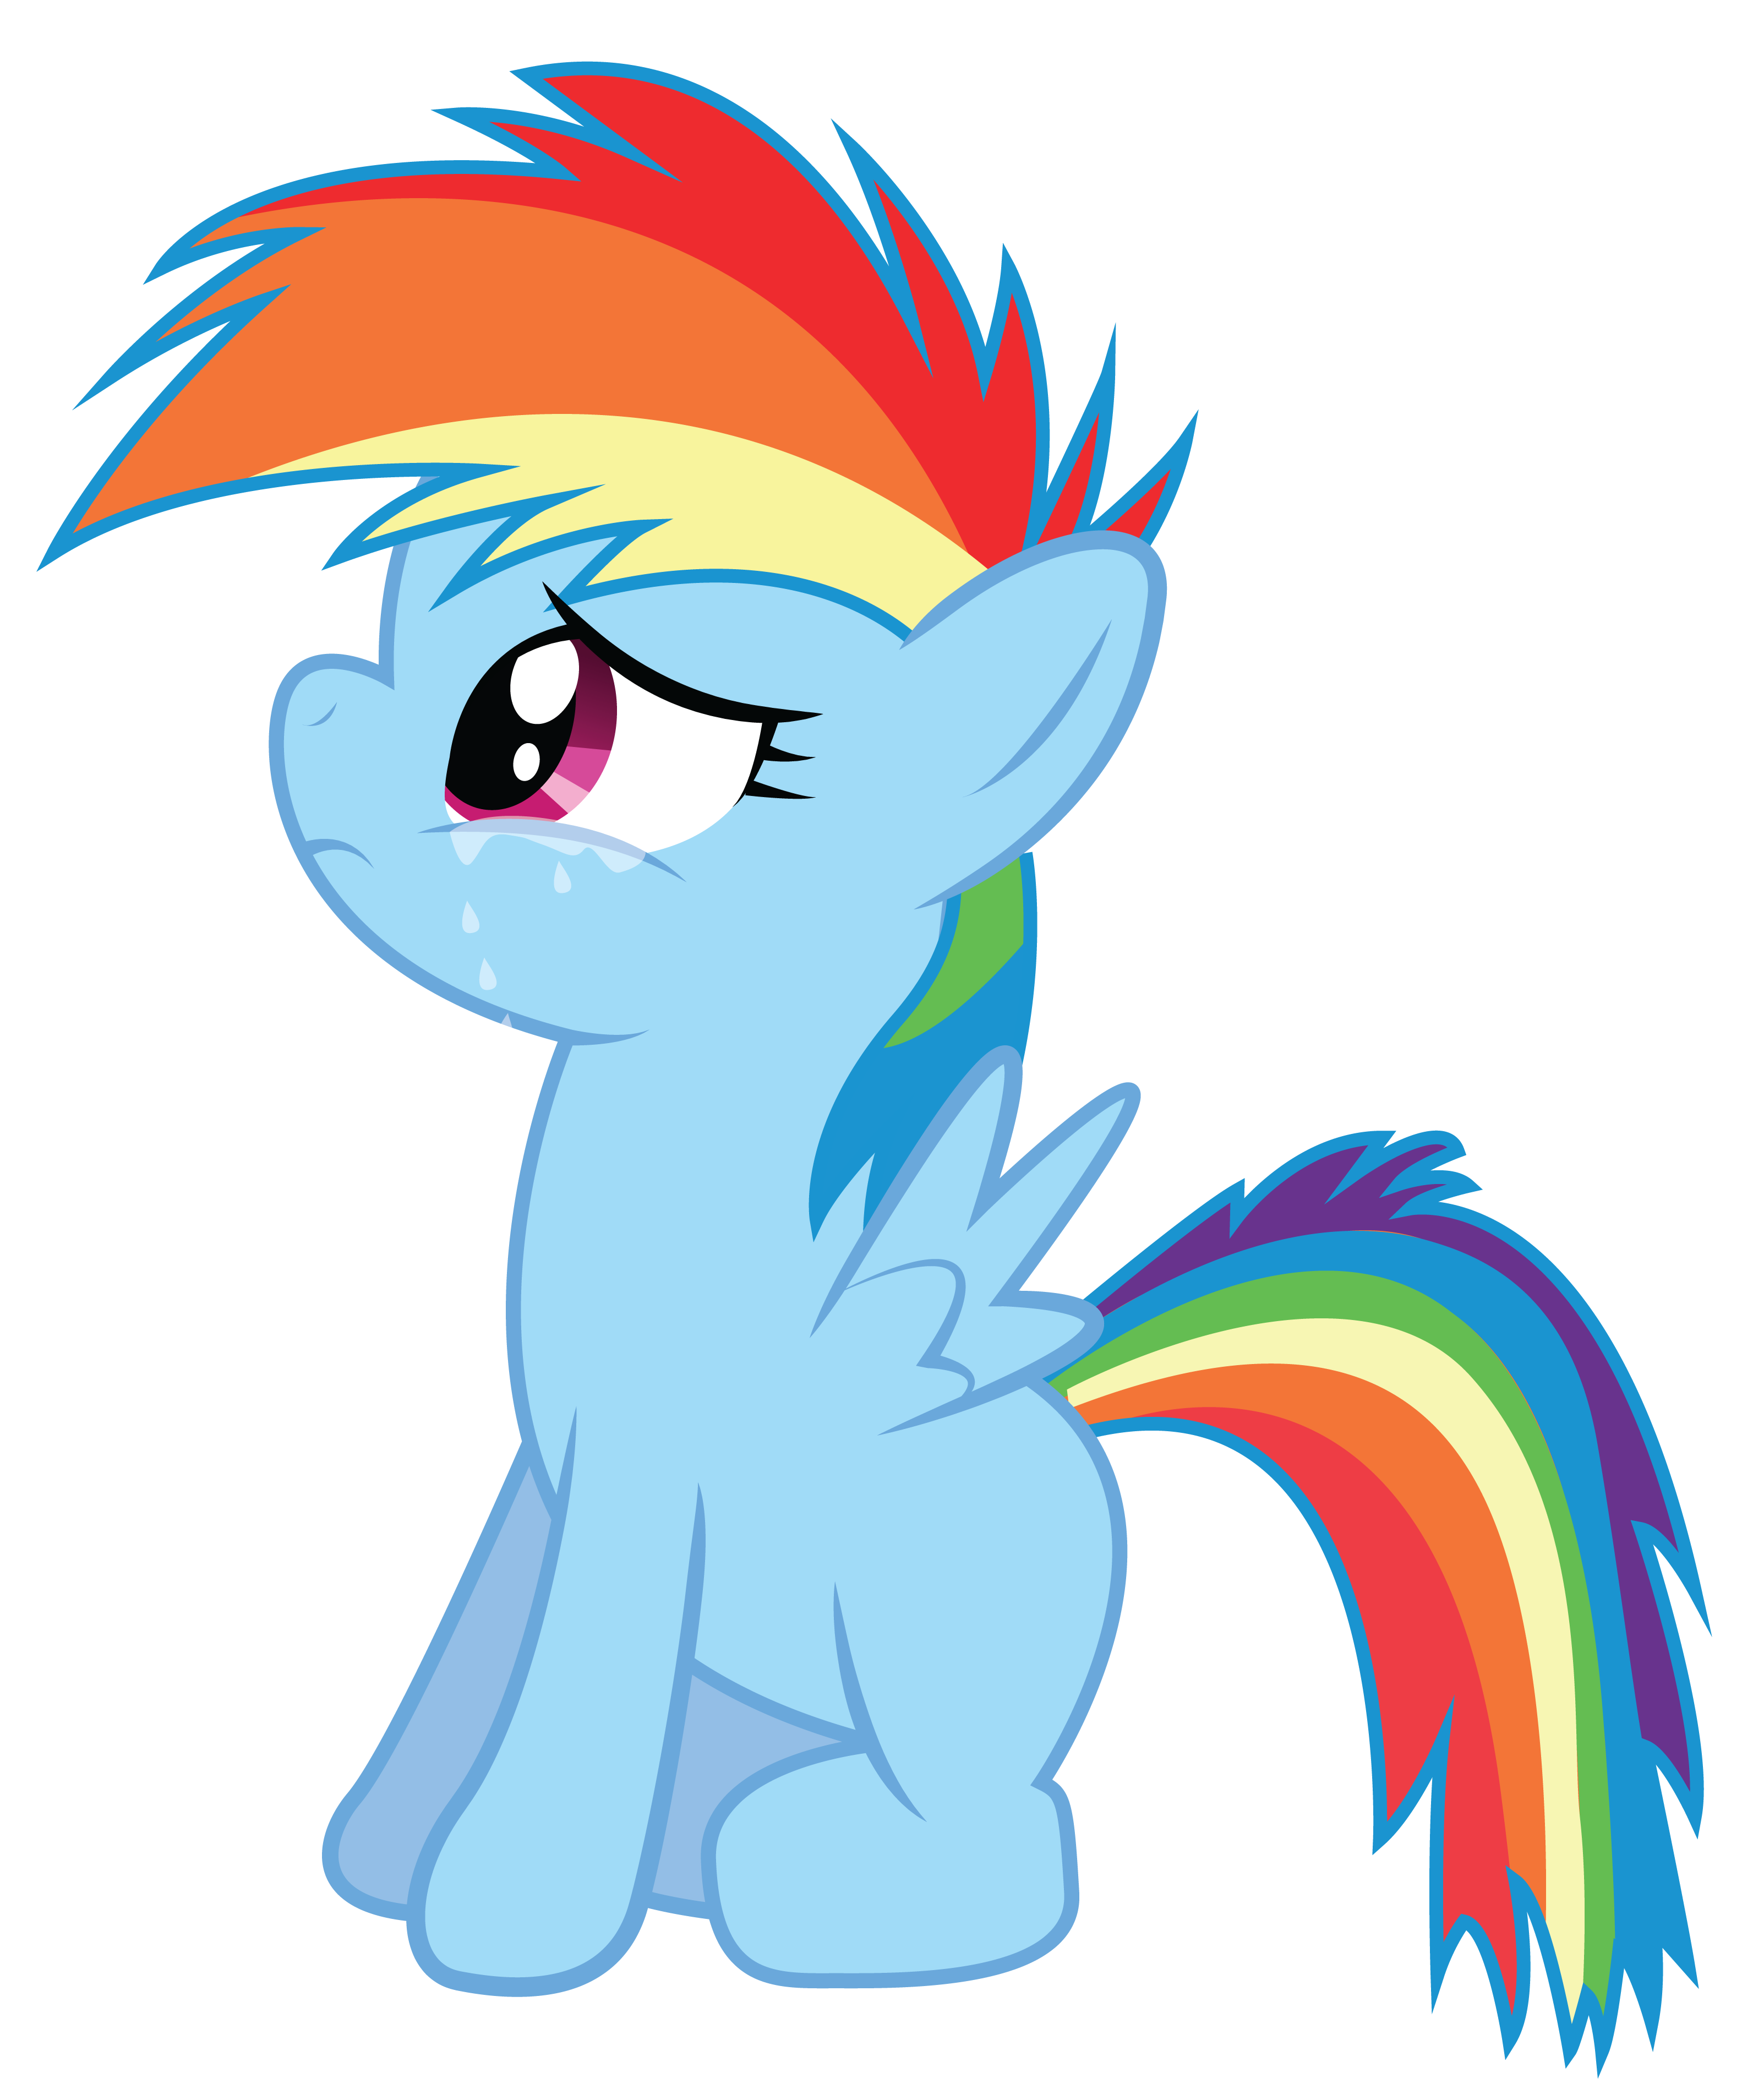 84099__safe_rainbow+dash_crying_filly_sad_artist-colon-bigccv.png